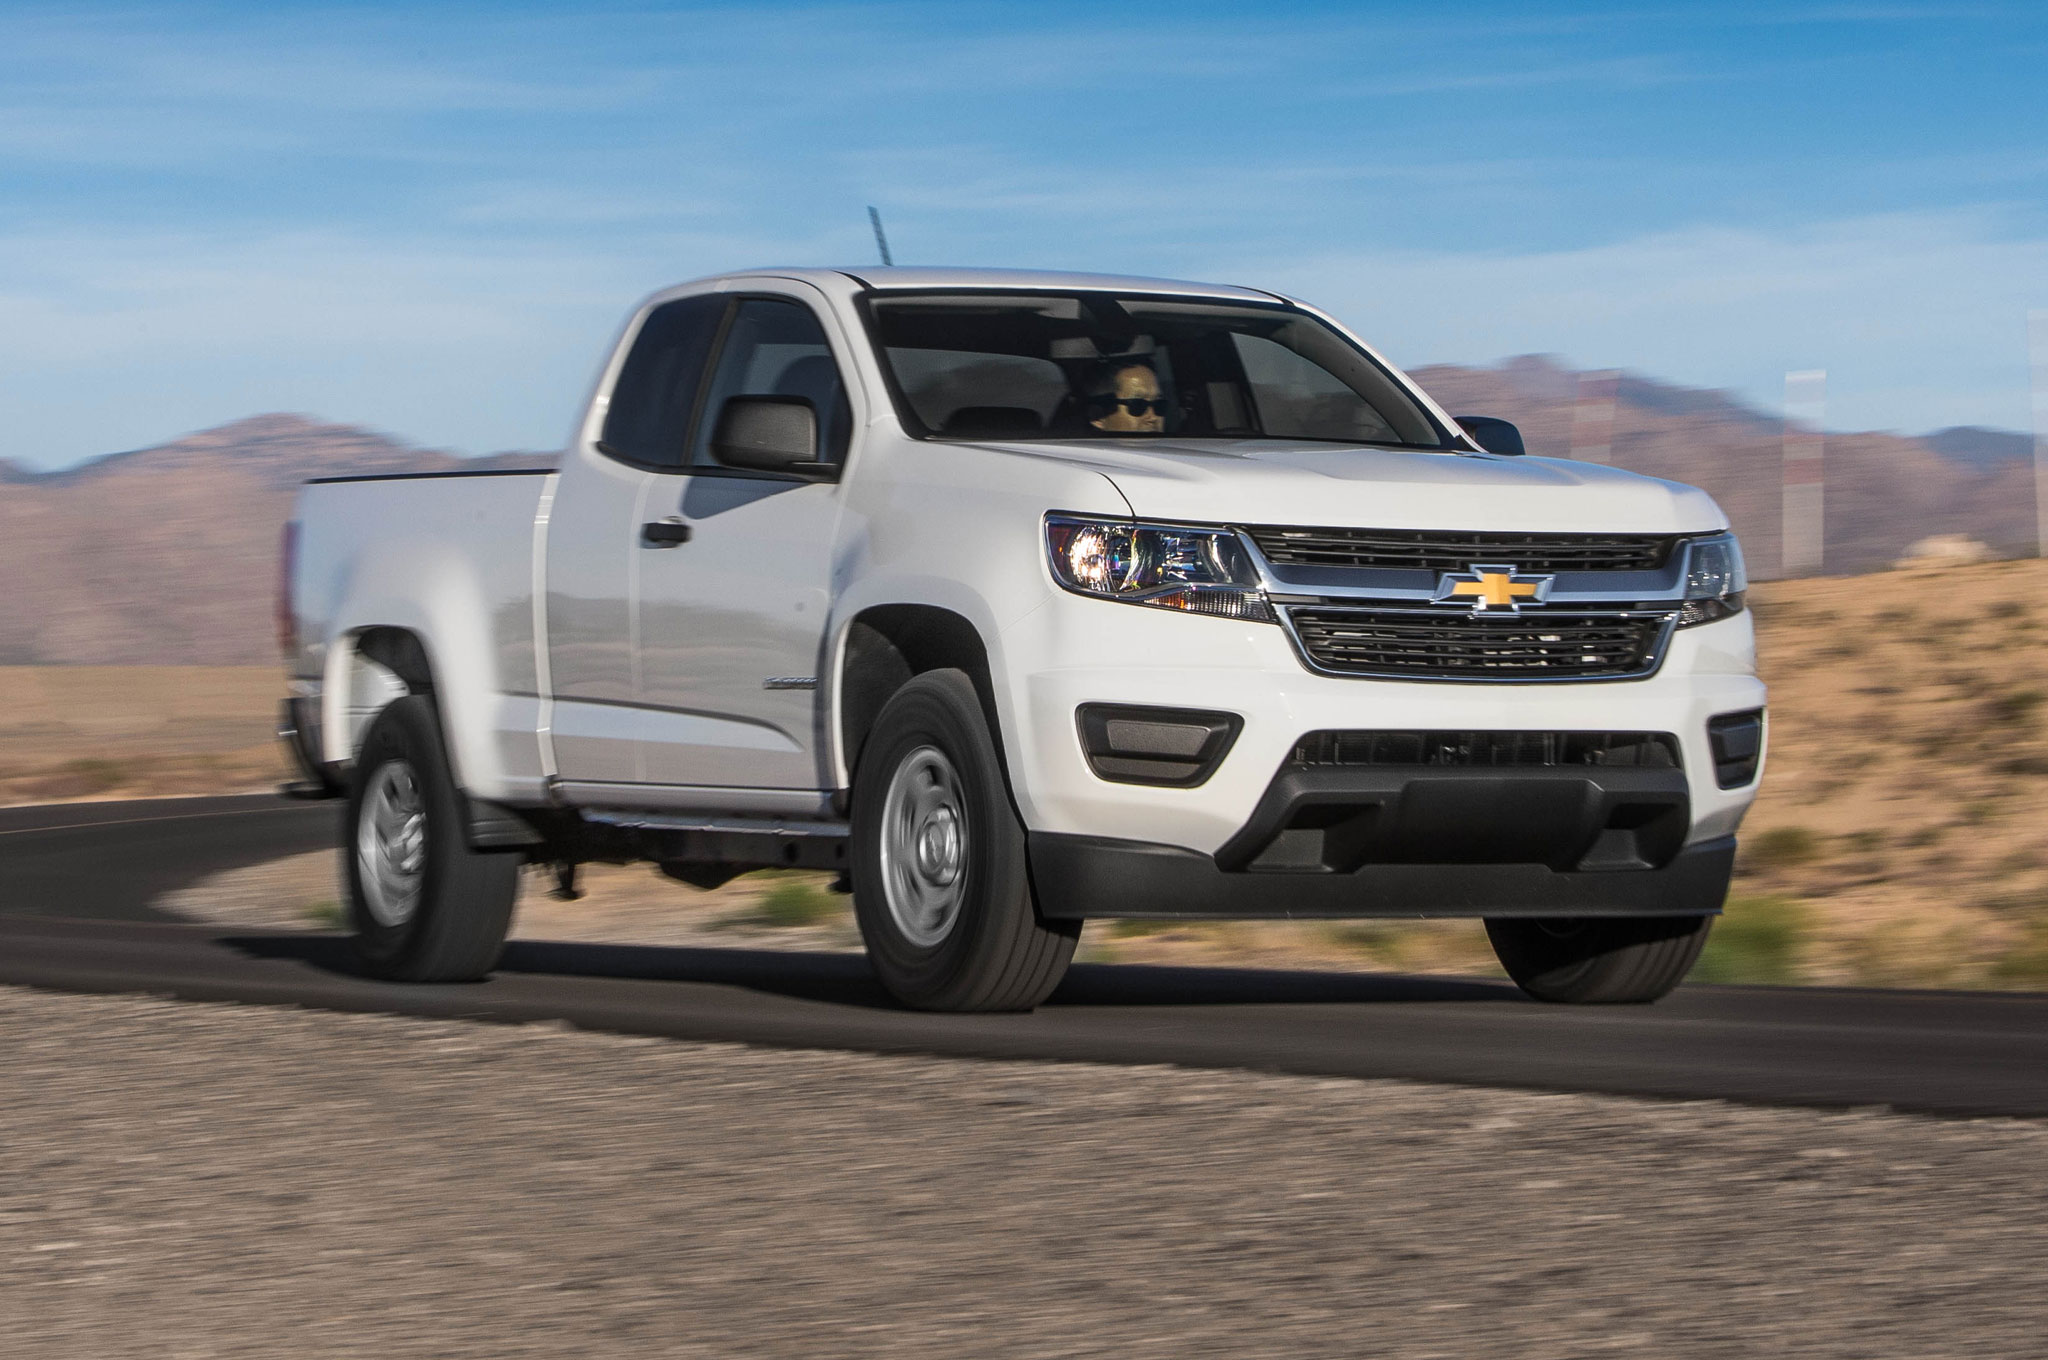 colorado showcases crew chevrolet side truck unveiled photos at sport adventurous concept year of cab fair s news the texas state model